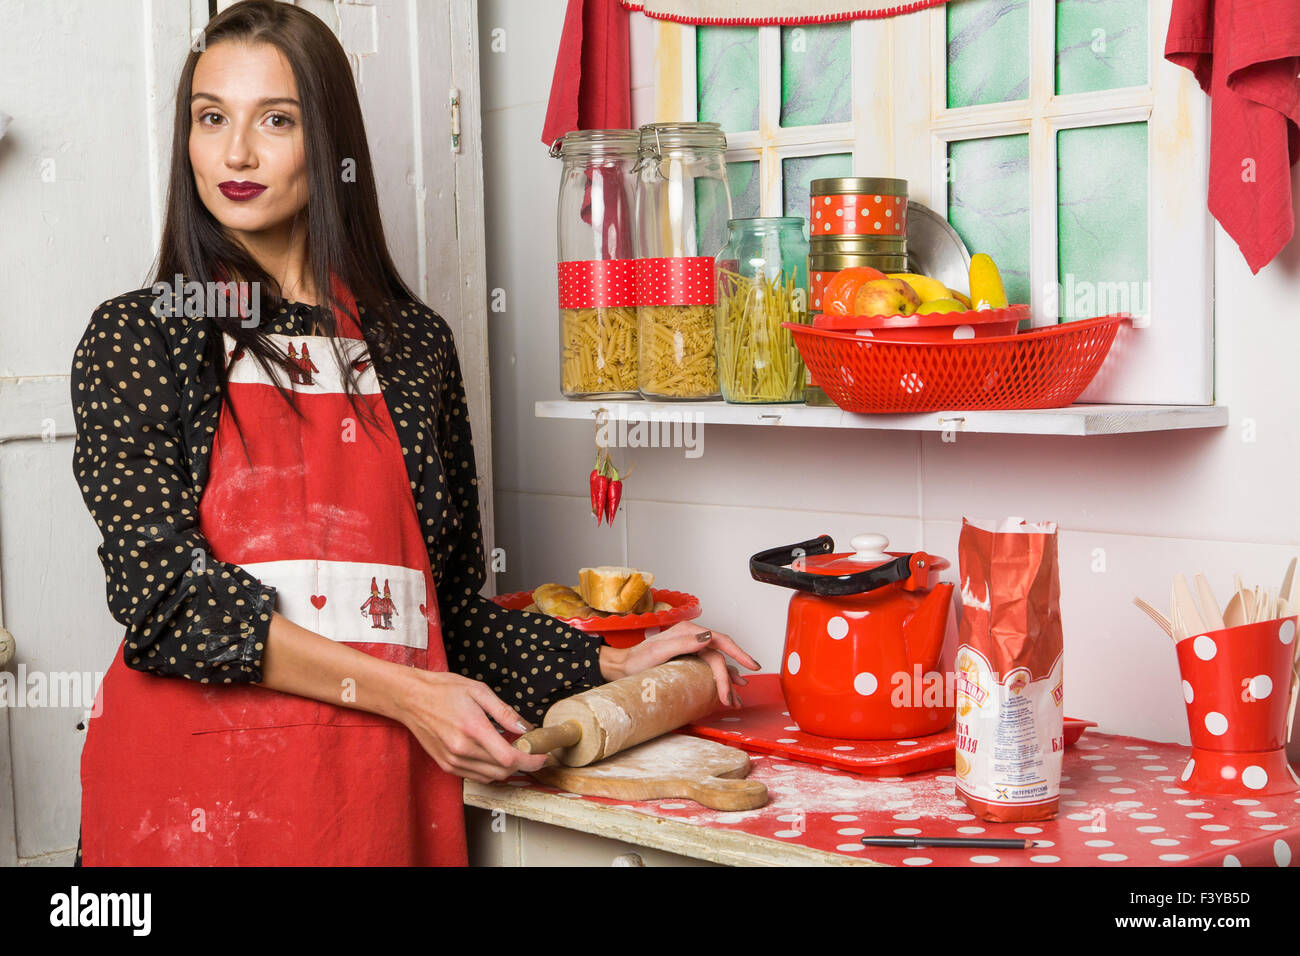 Housewife in the kitchen - Stock Image